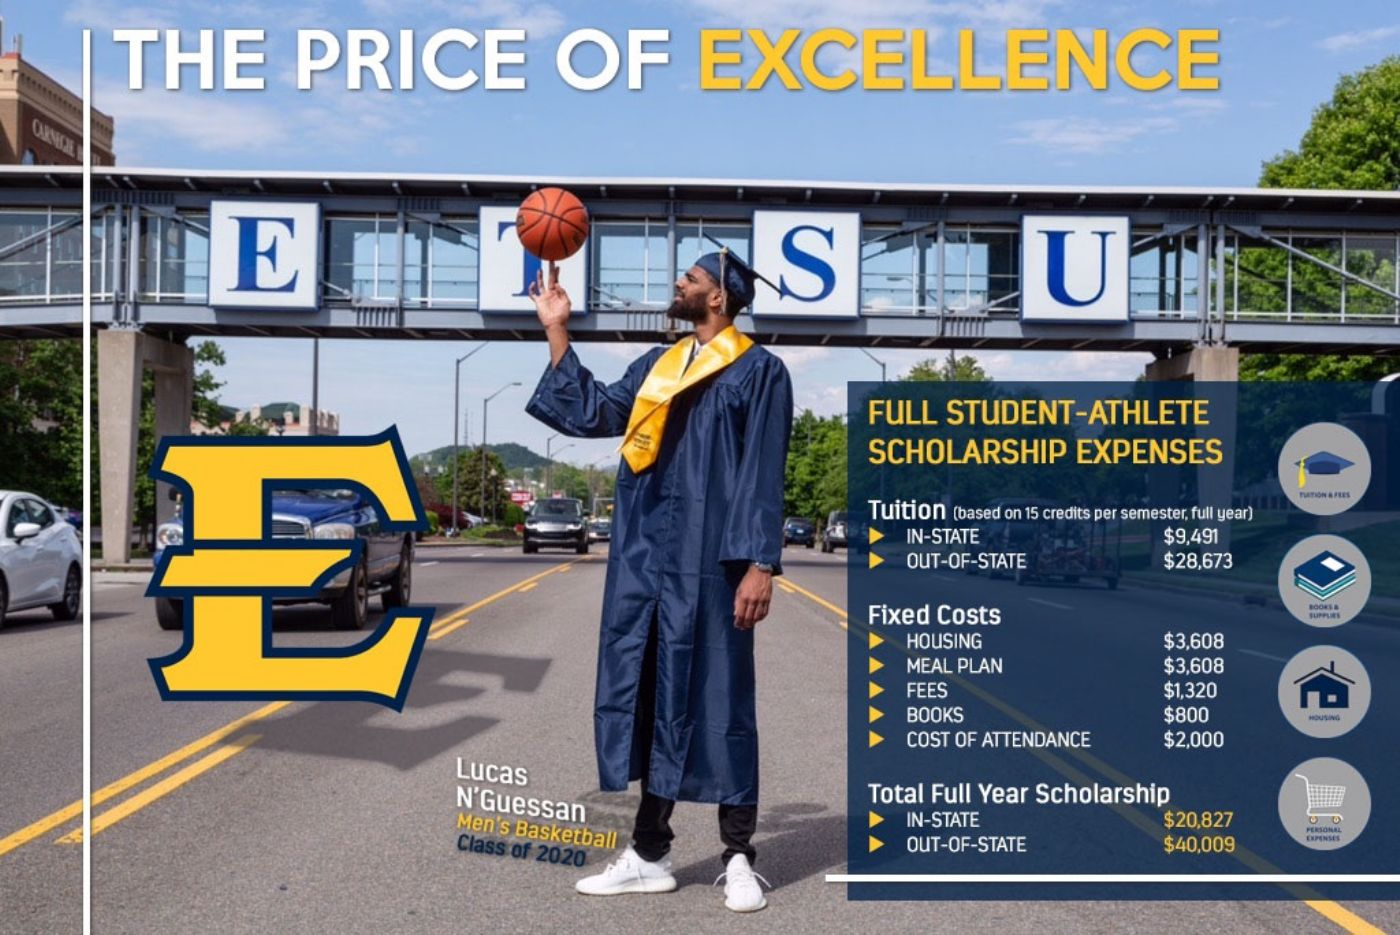 Price of Excellence